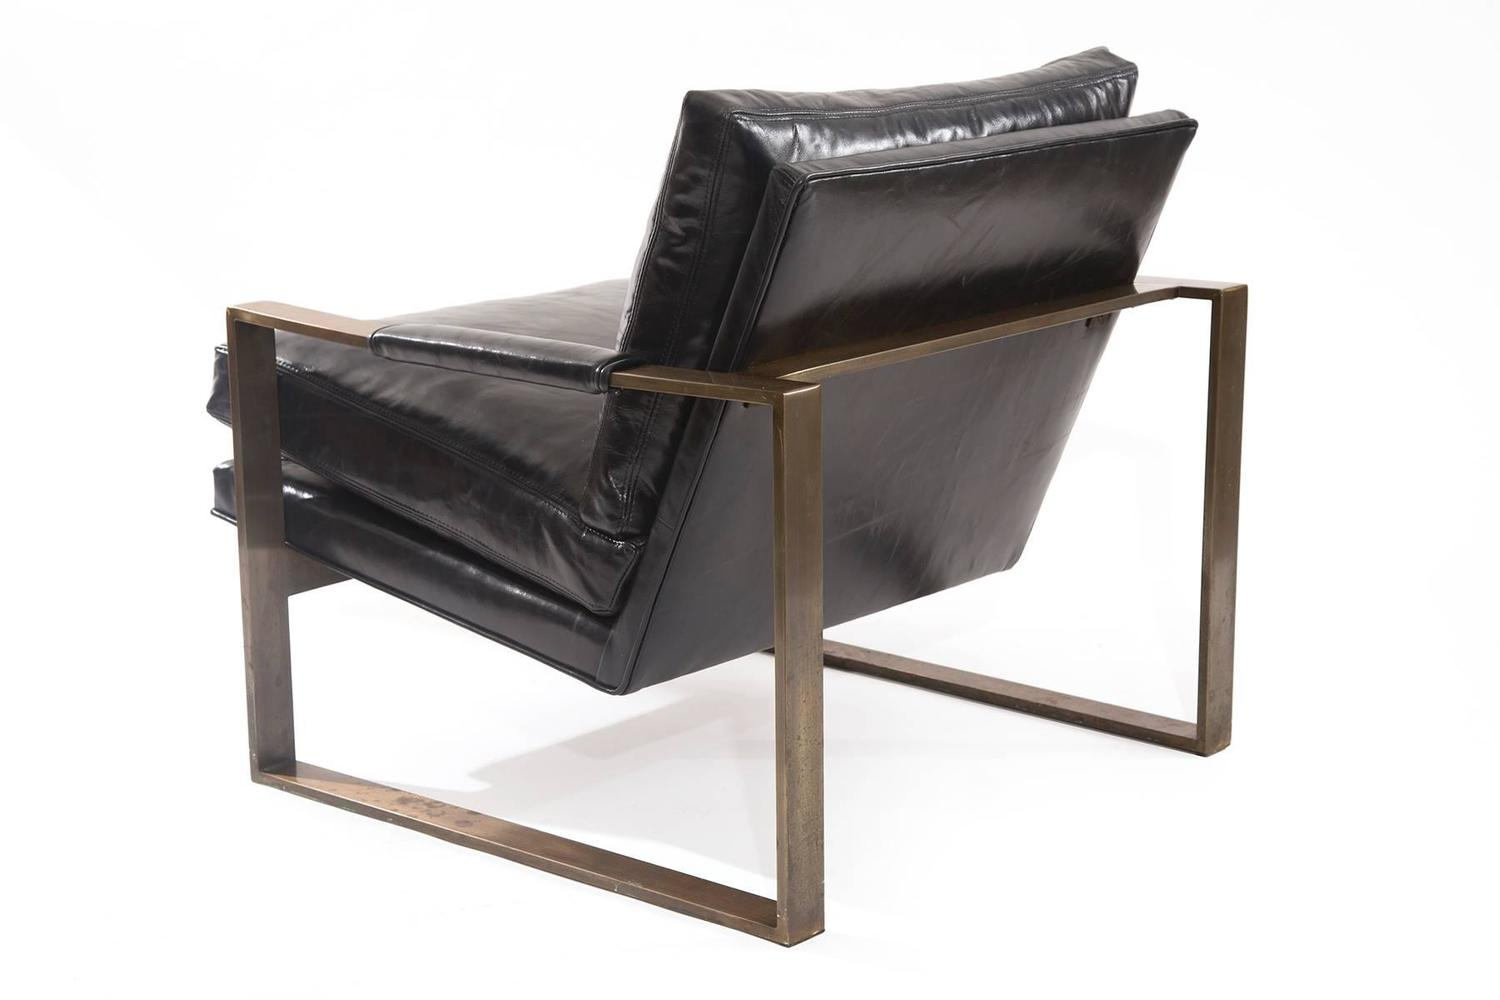 Rare Bronze and Leather Lounge Chair by Milo Baughman at 1stdibs